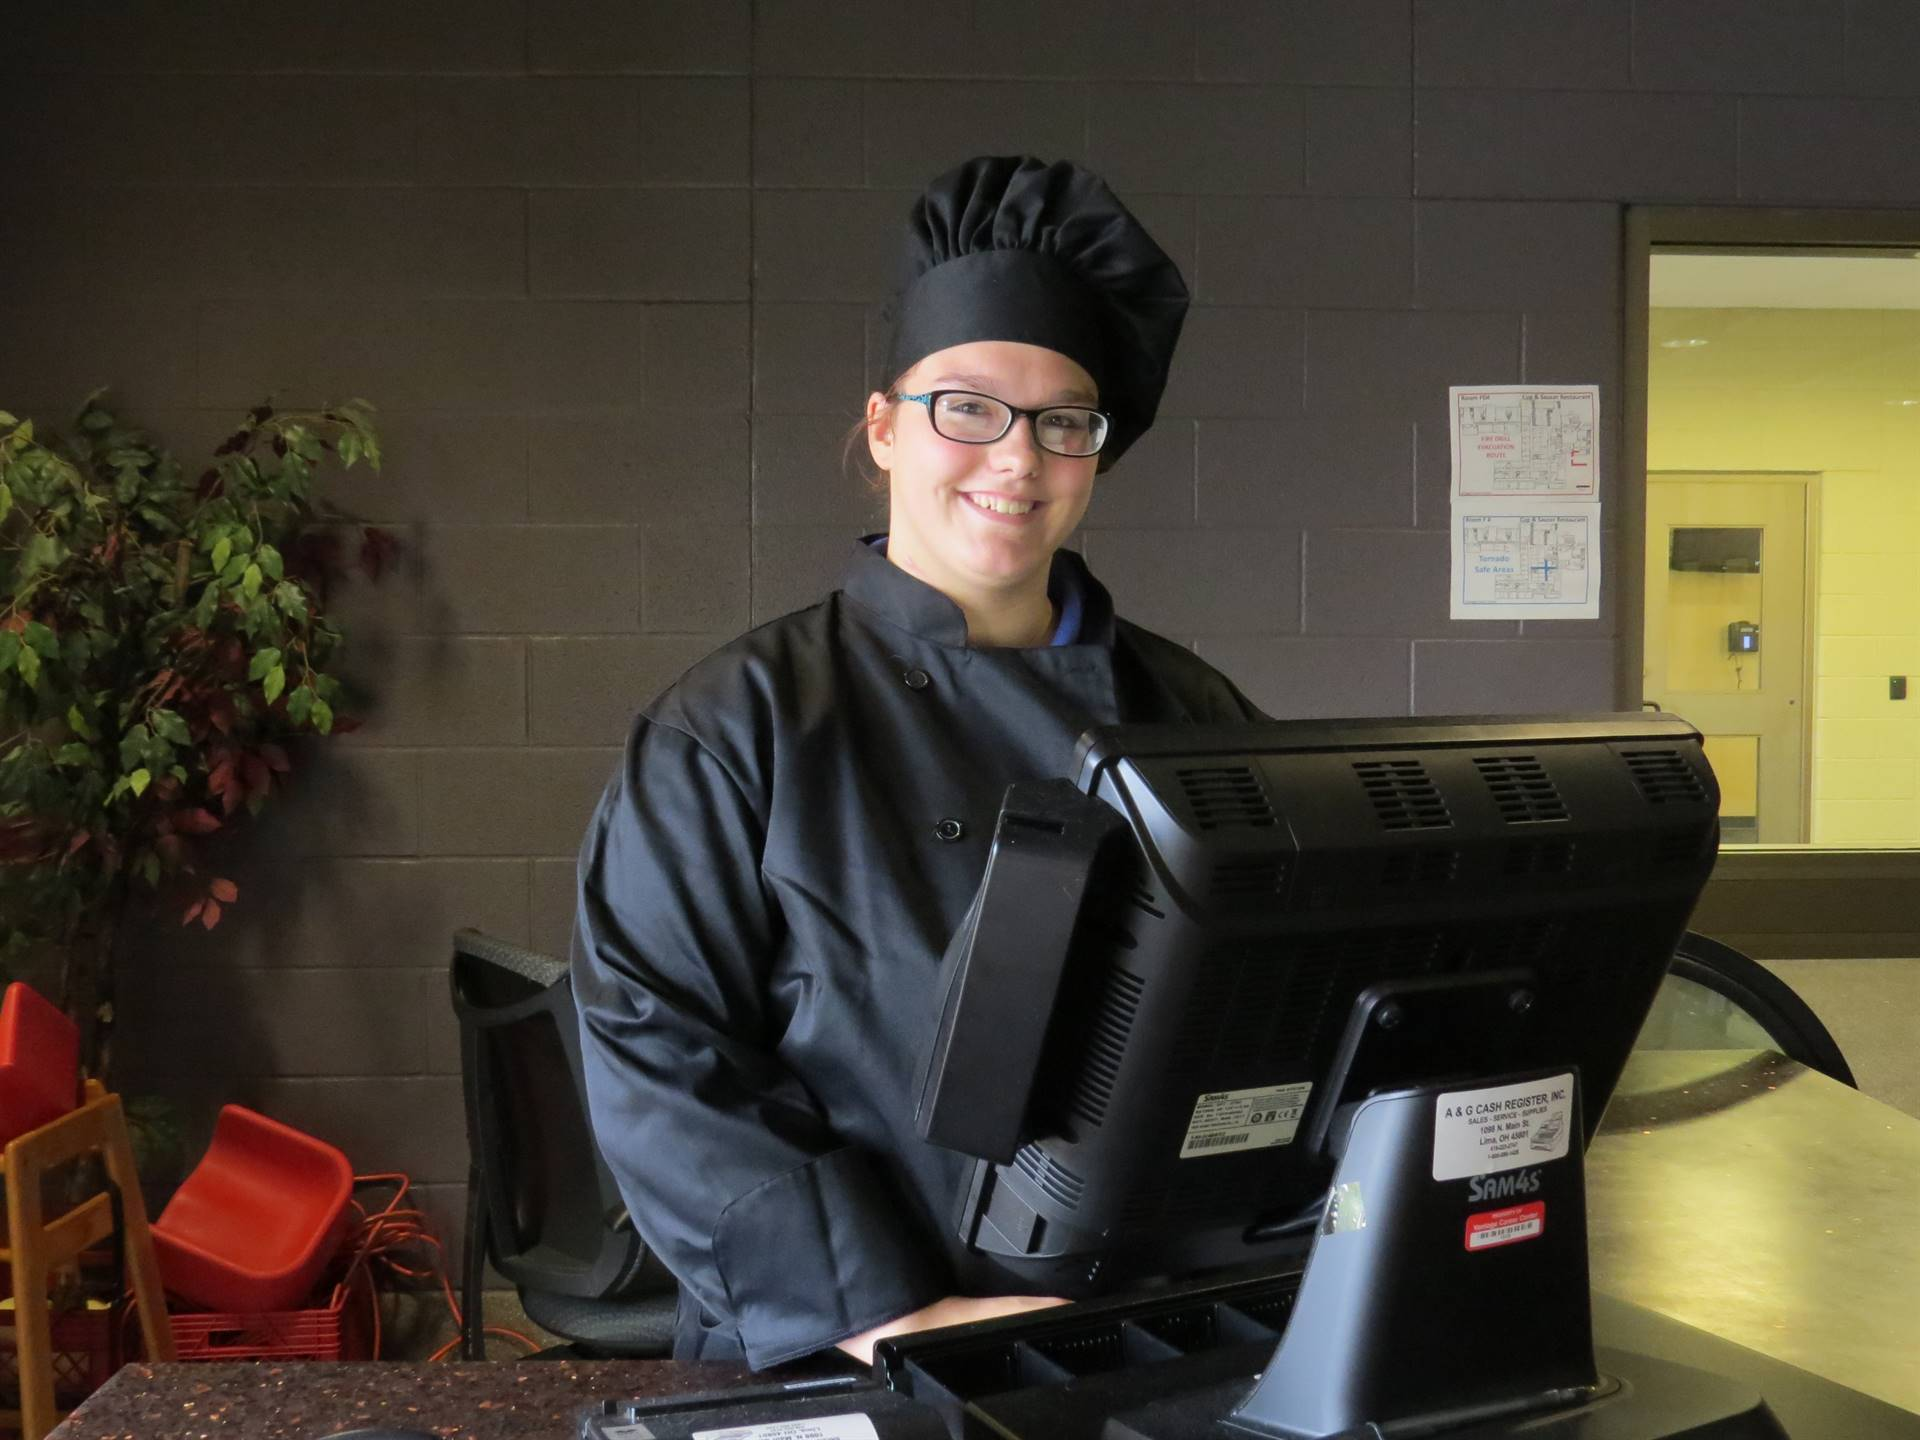 Female Culinary Arts student in black chef coat and hat at the cashier station